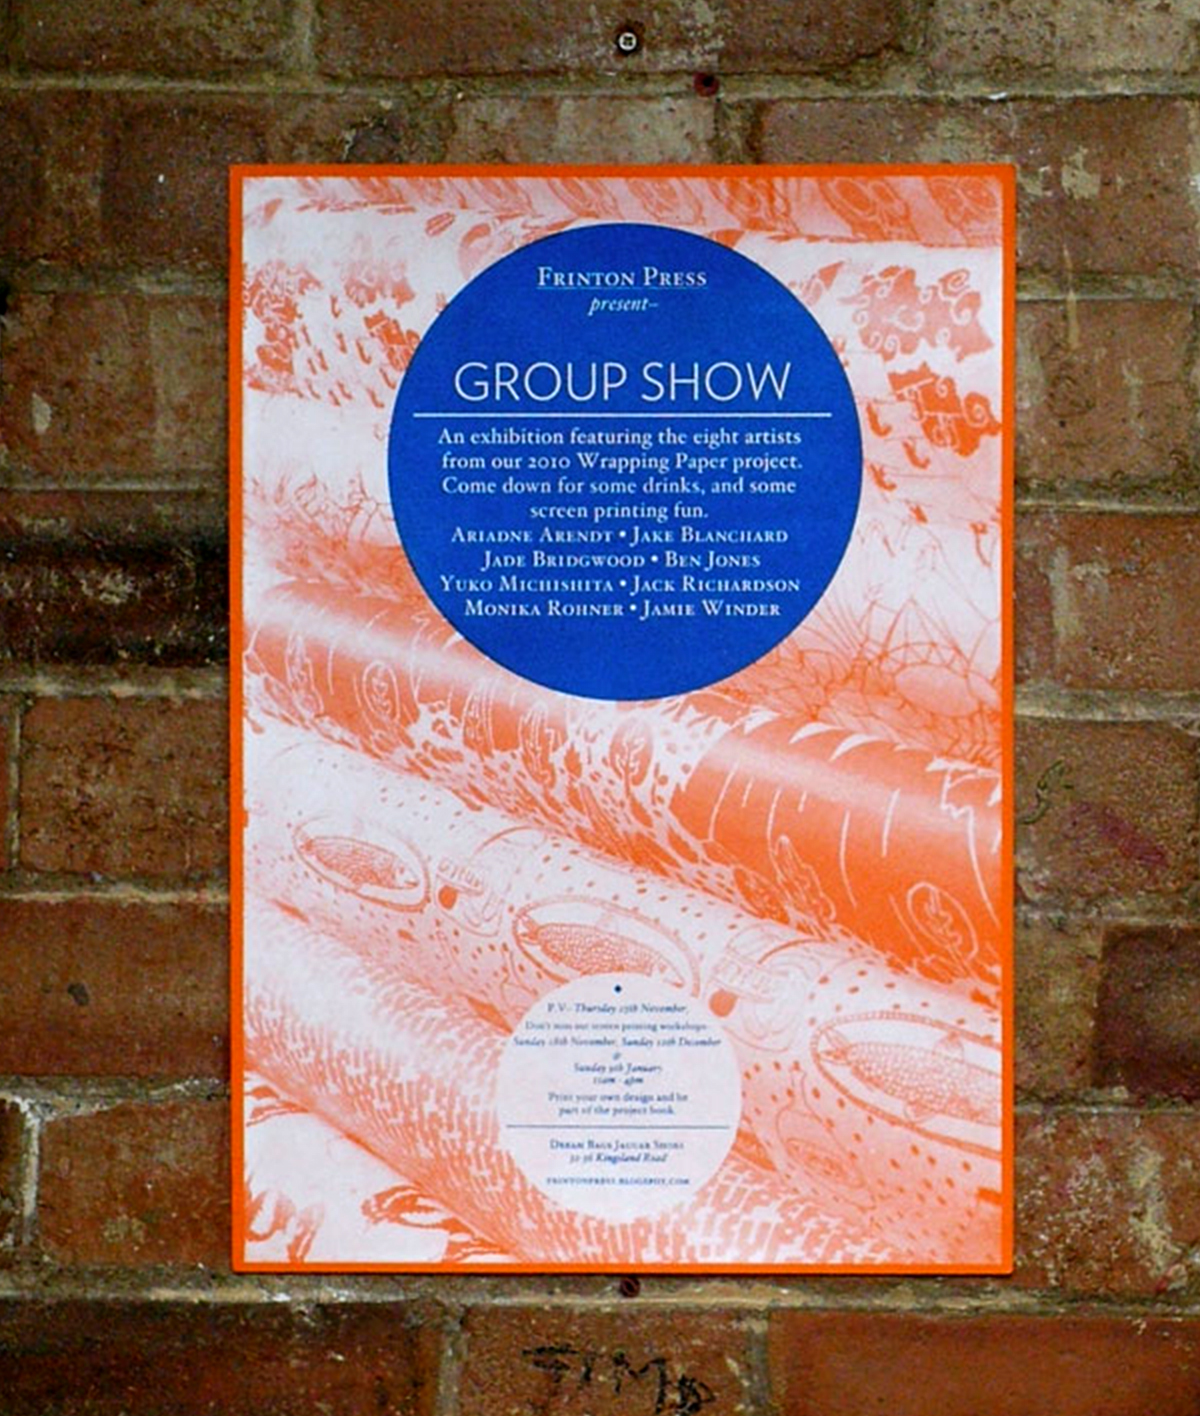 Photograph of Frinton Press Group Show poster